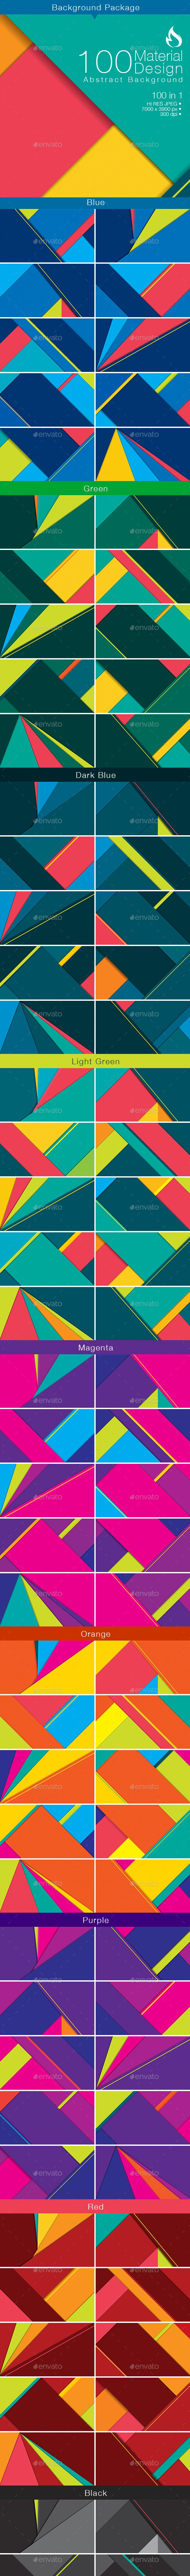 Material design abstract background - Backgrounds Graphics